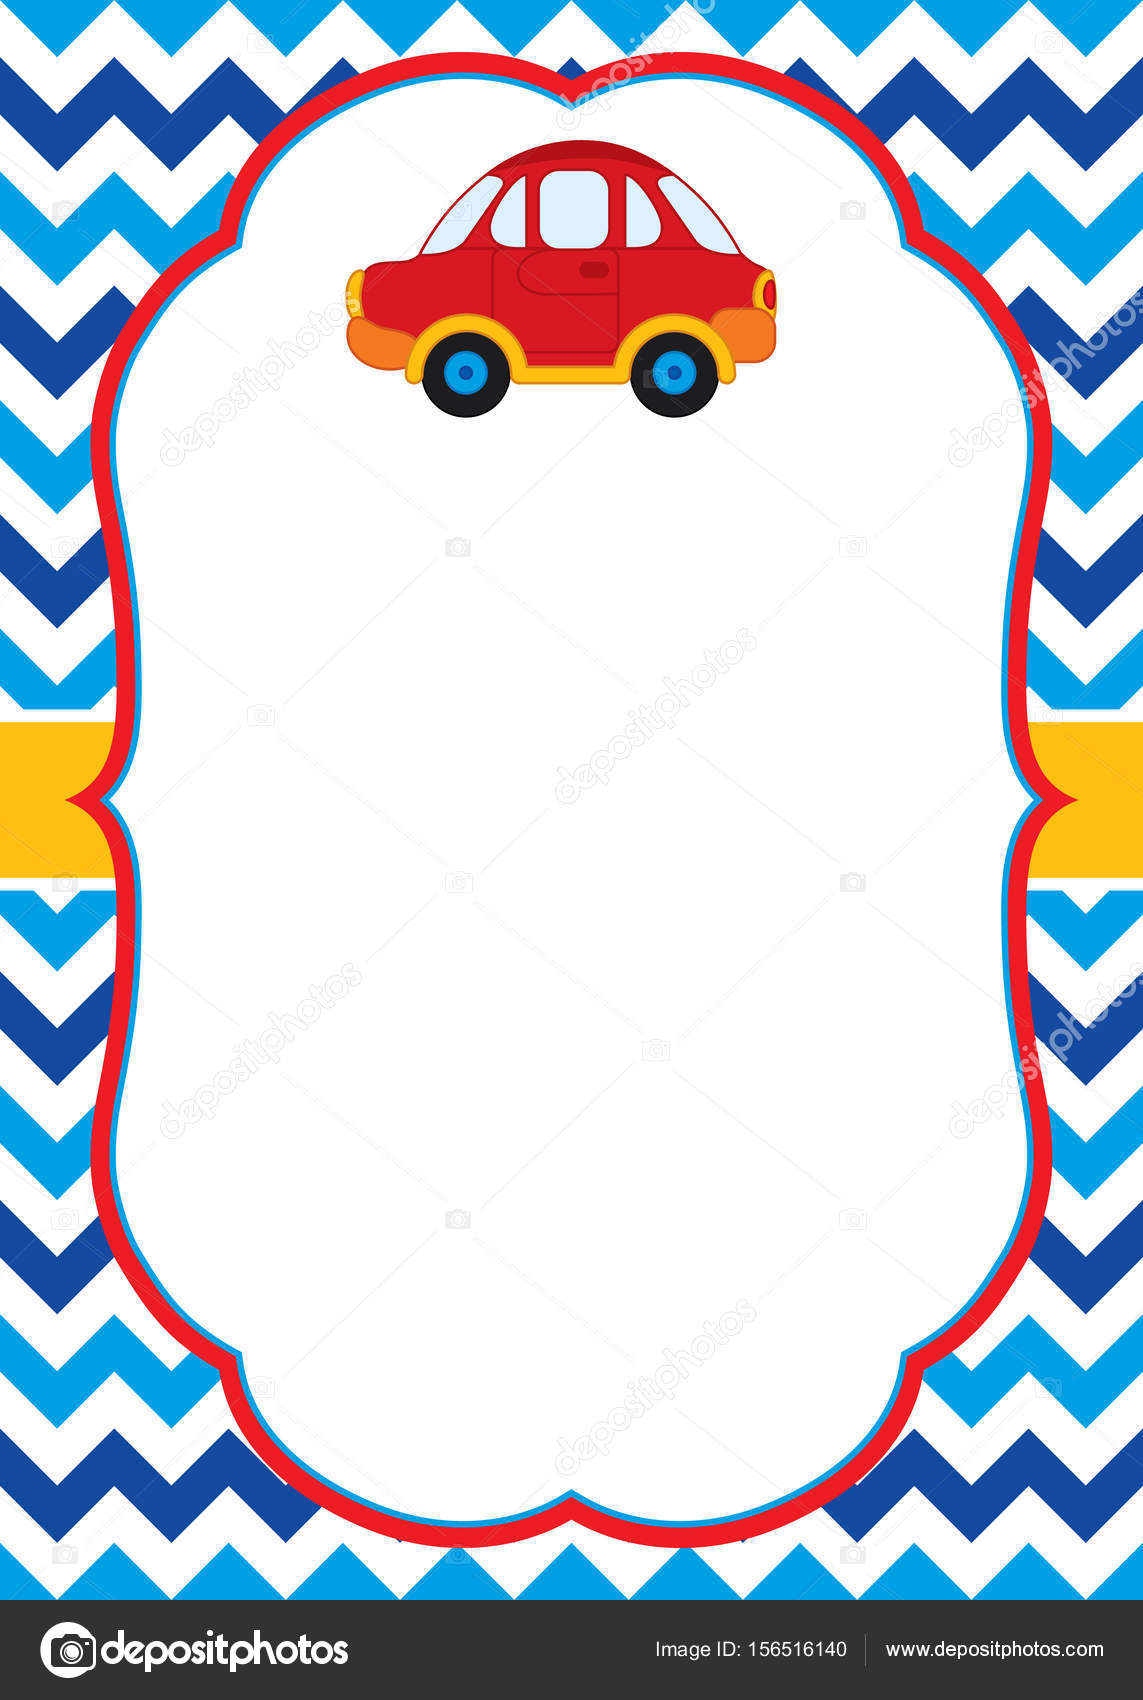 Vector Card Template with a Colorful Car on Chevron Background